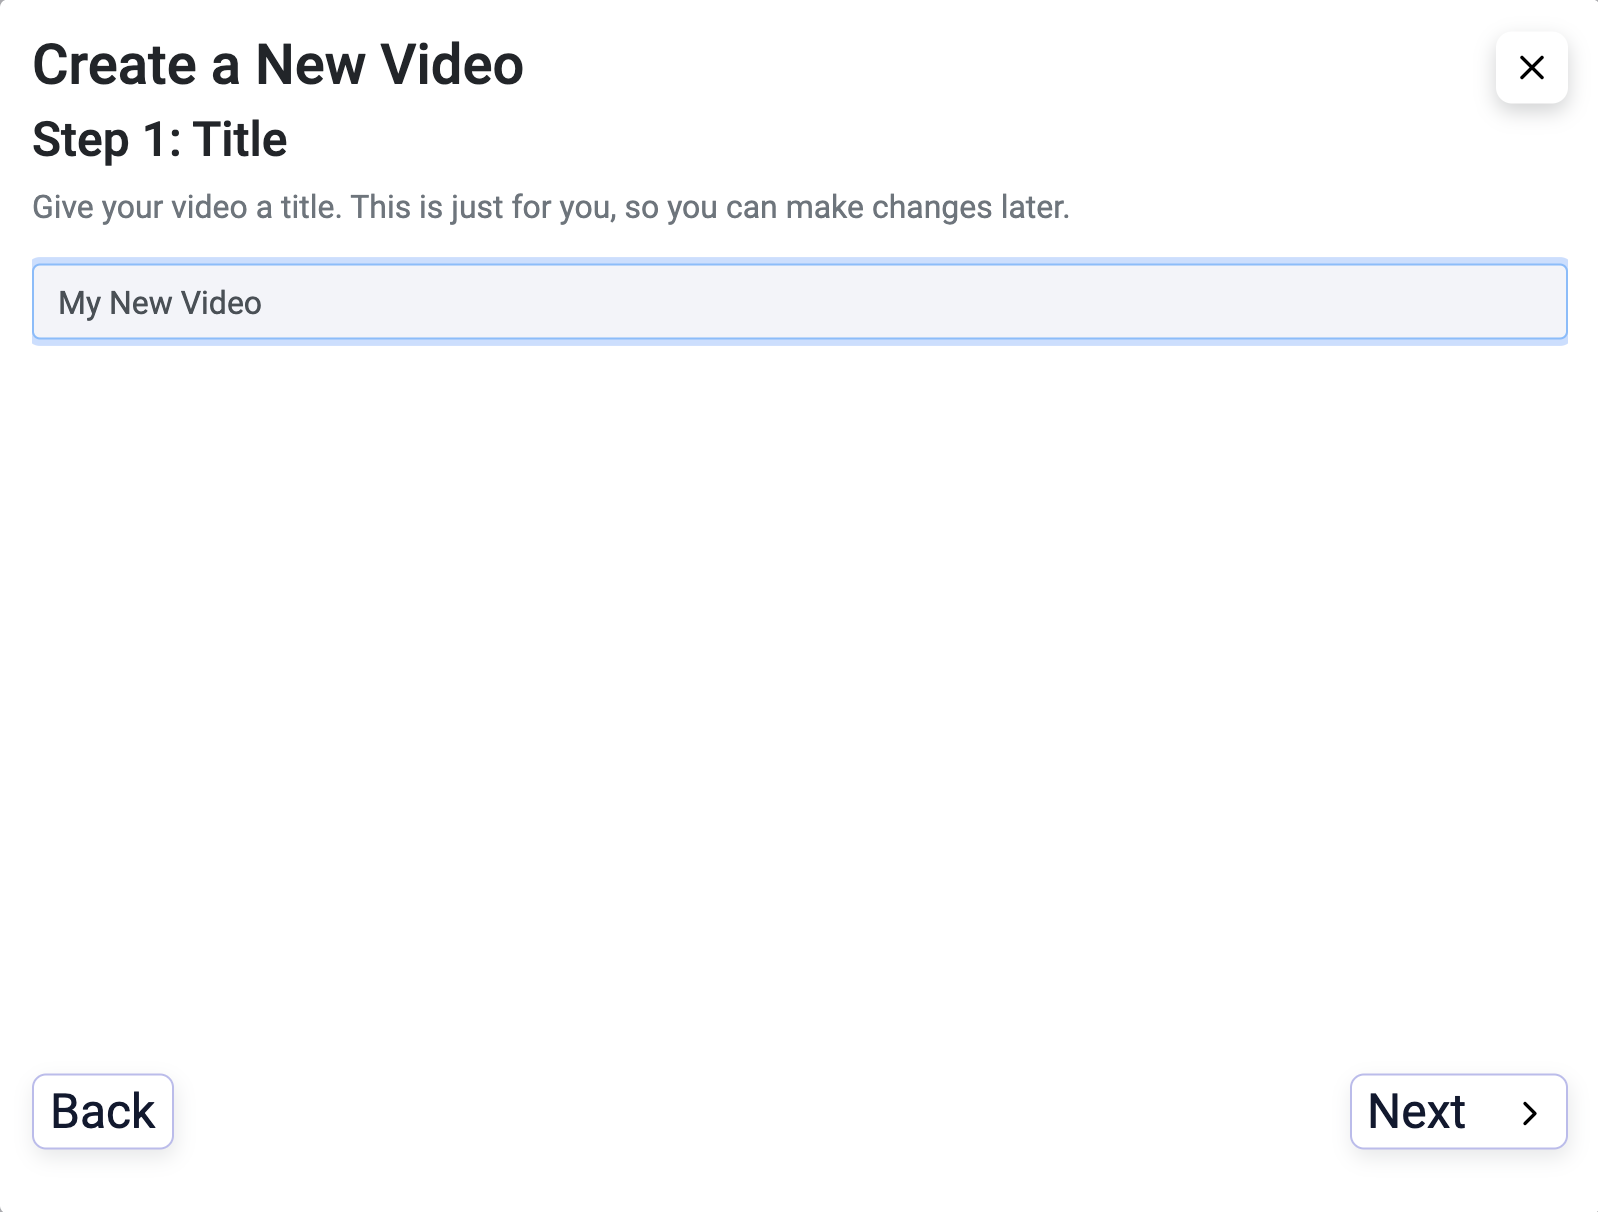 Create your first video - step 2